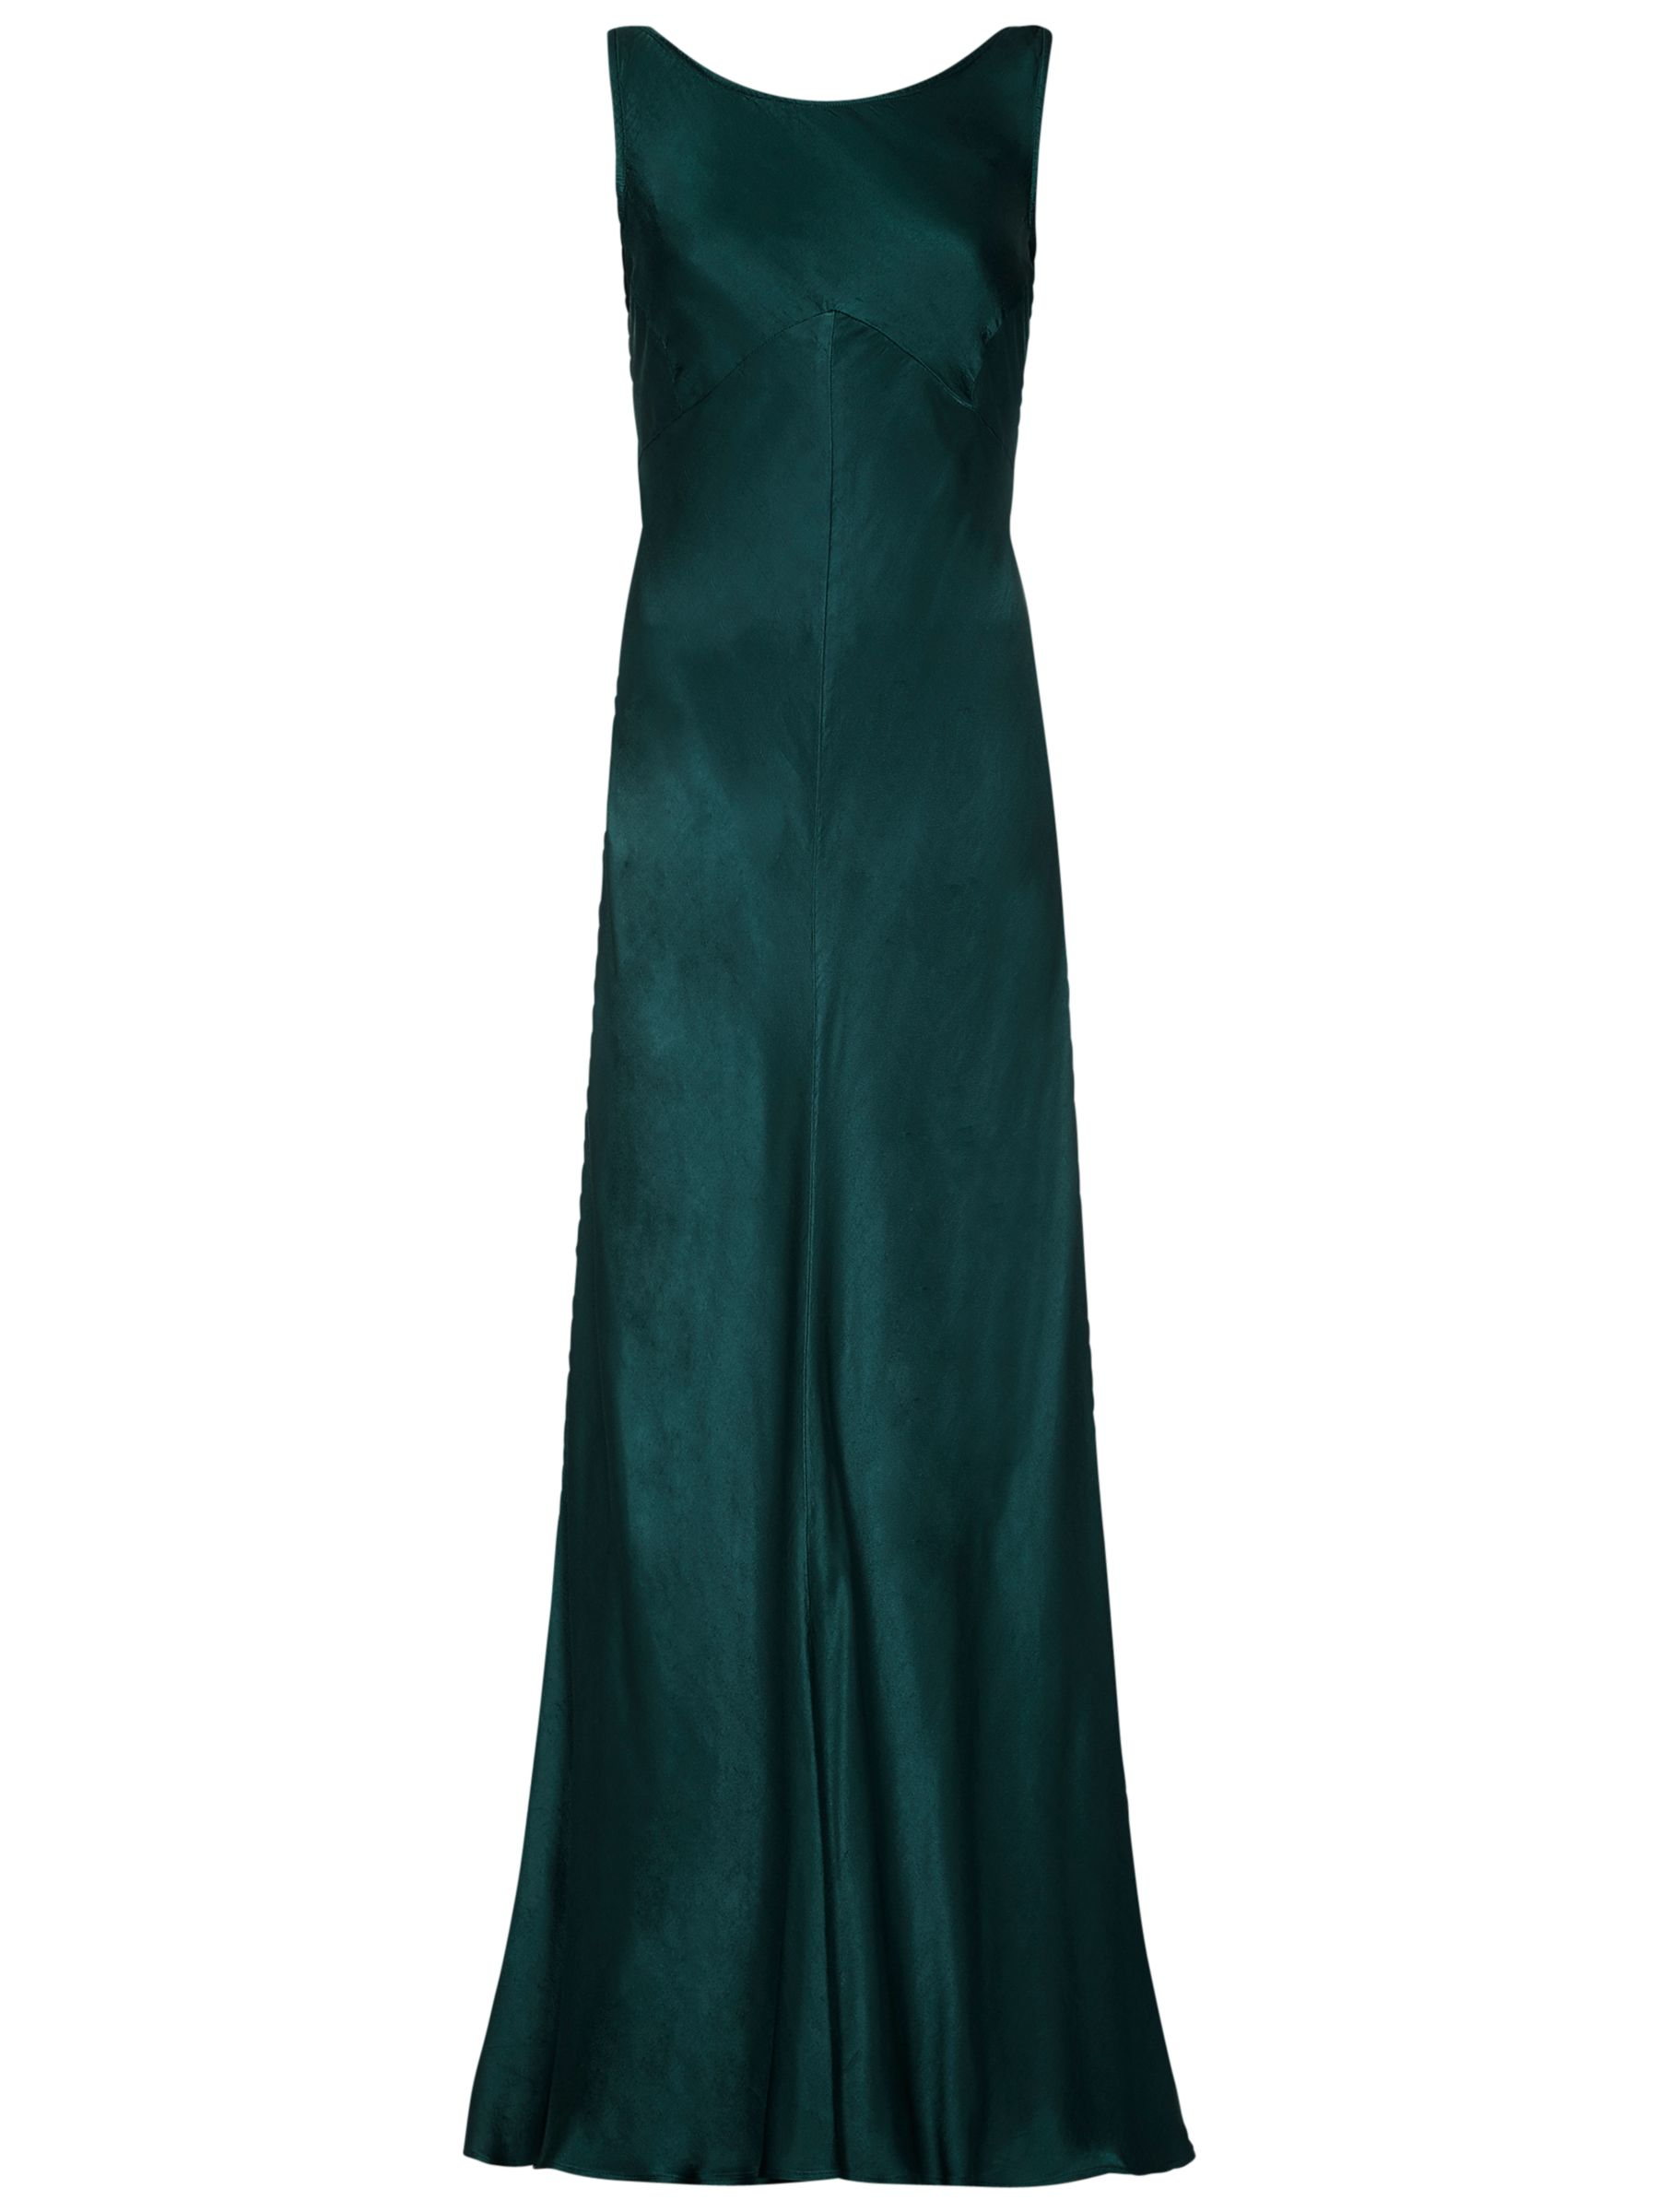 1930s Style Fashion Dresses Ghost Edie Dress £265.00 AT vintagedancer.com